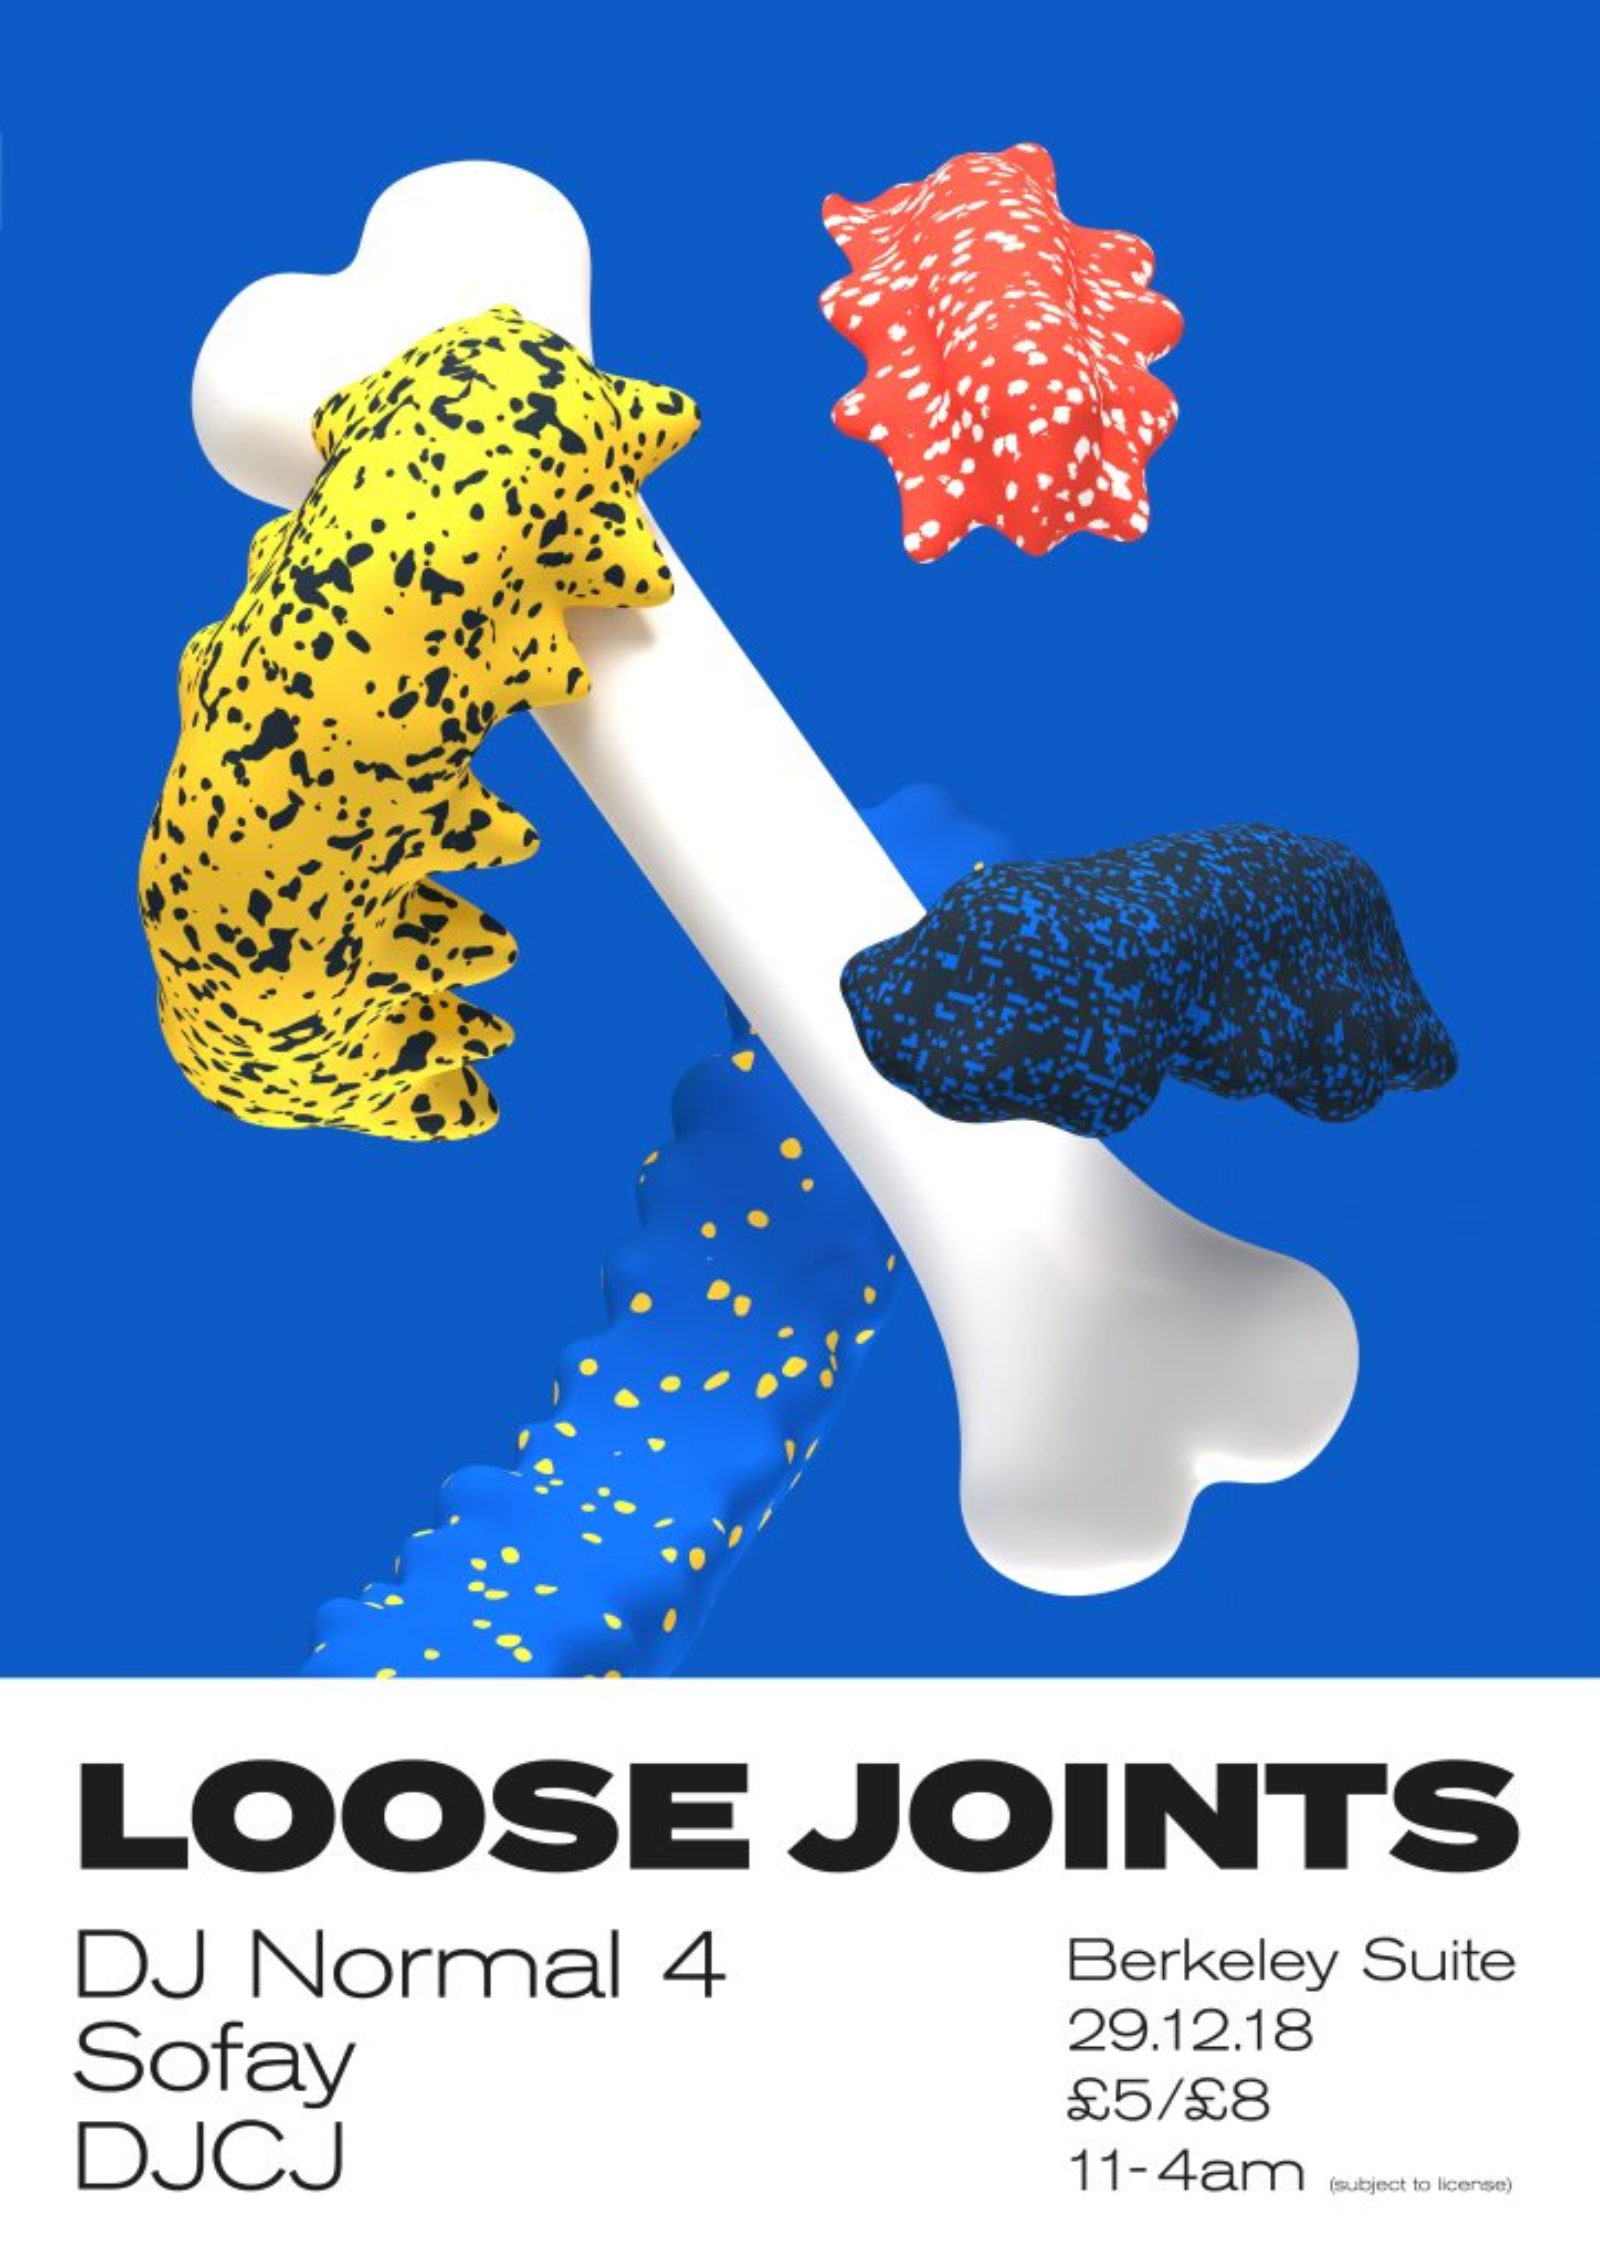 Loose Joints - DJ Normal 4, Sofay, DJCJ